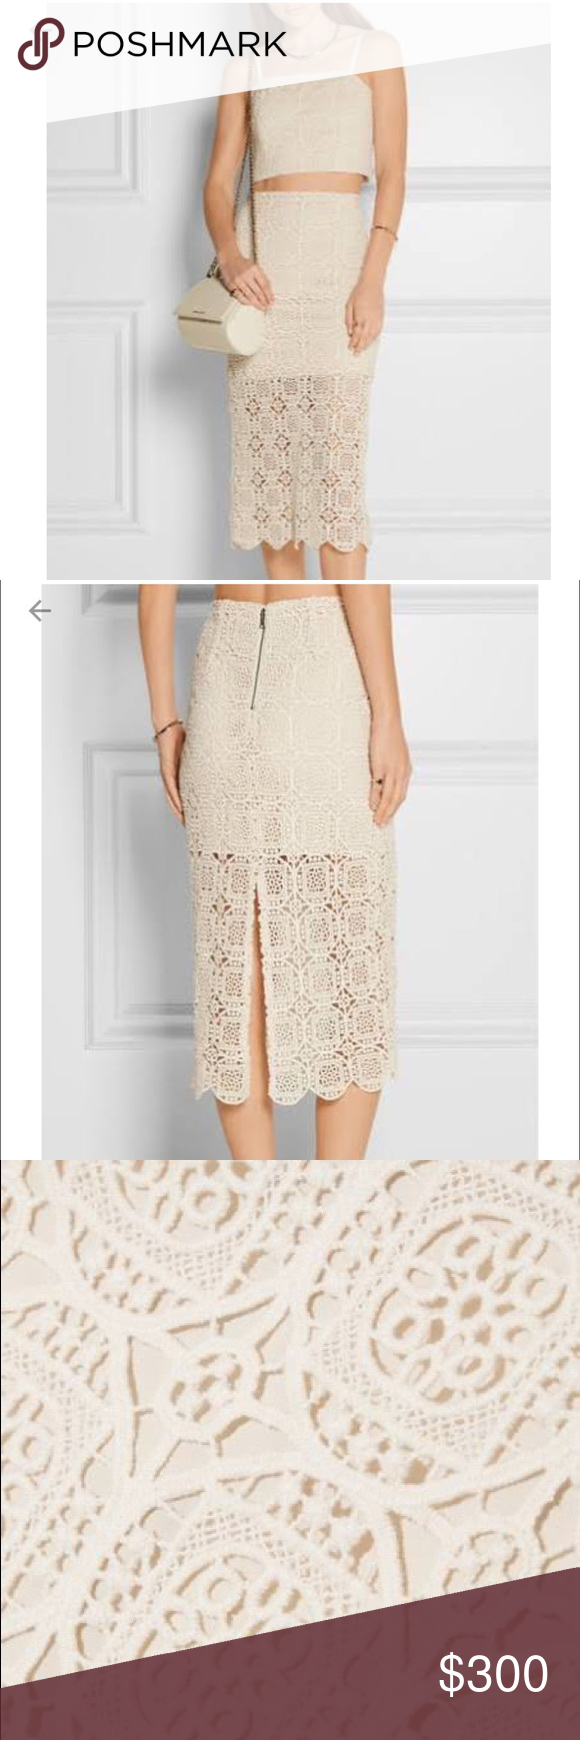 Alice & Olivia Crochet skirt. Alice Olivia's 'Khiara' skirt is made from cream crocheted cotton and designed to sit at the smallest part of your waist. Finished with a pretty scalloped trim, this vintage-inspired style has a mini-length lining that tempers the sheer finish. Complete the look with the matching cropped top. Alice + Olivia Skirts Midi